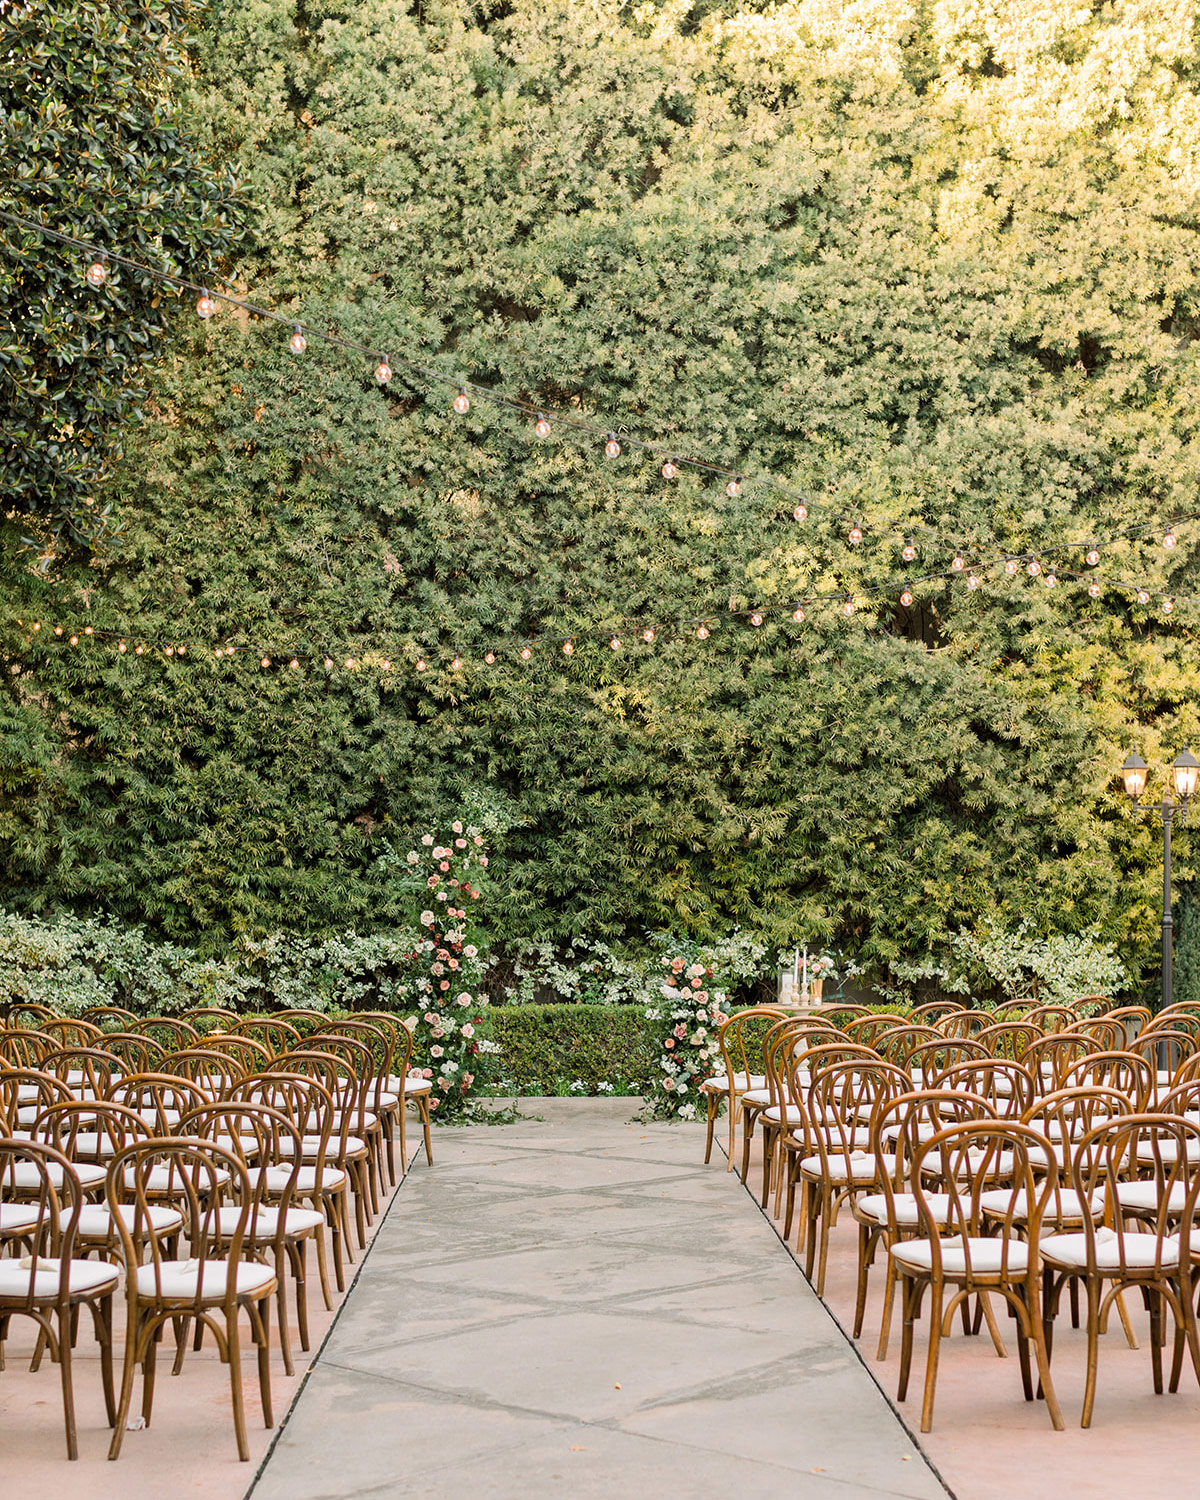 outdoor ceremony location with greenery wall and wooden chairs